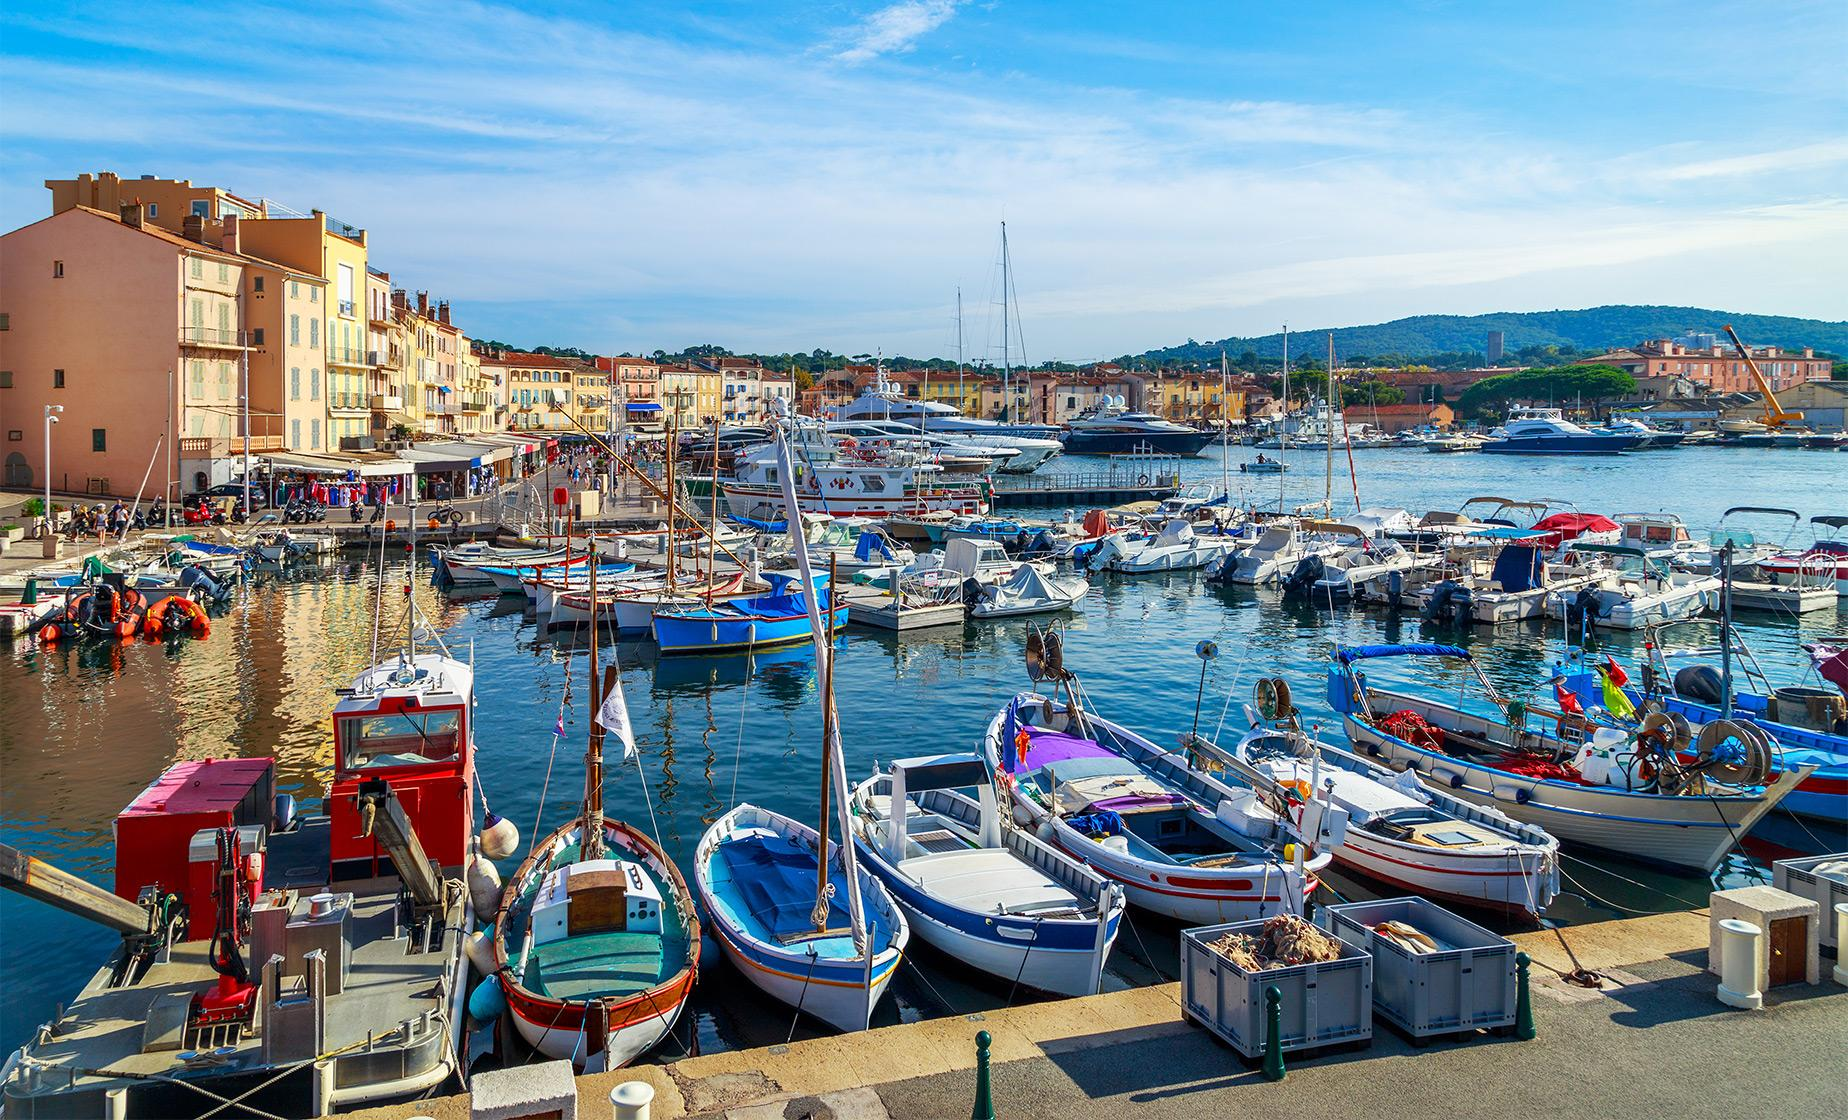 Saint Tropez and Port Grimaud Tour from Monte Carlo (The Little Venice, Place des Lys)